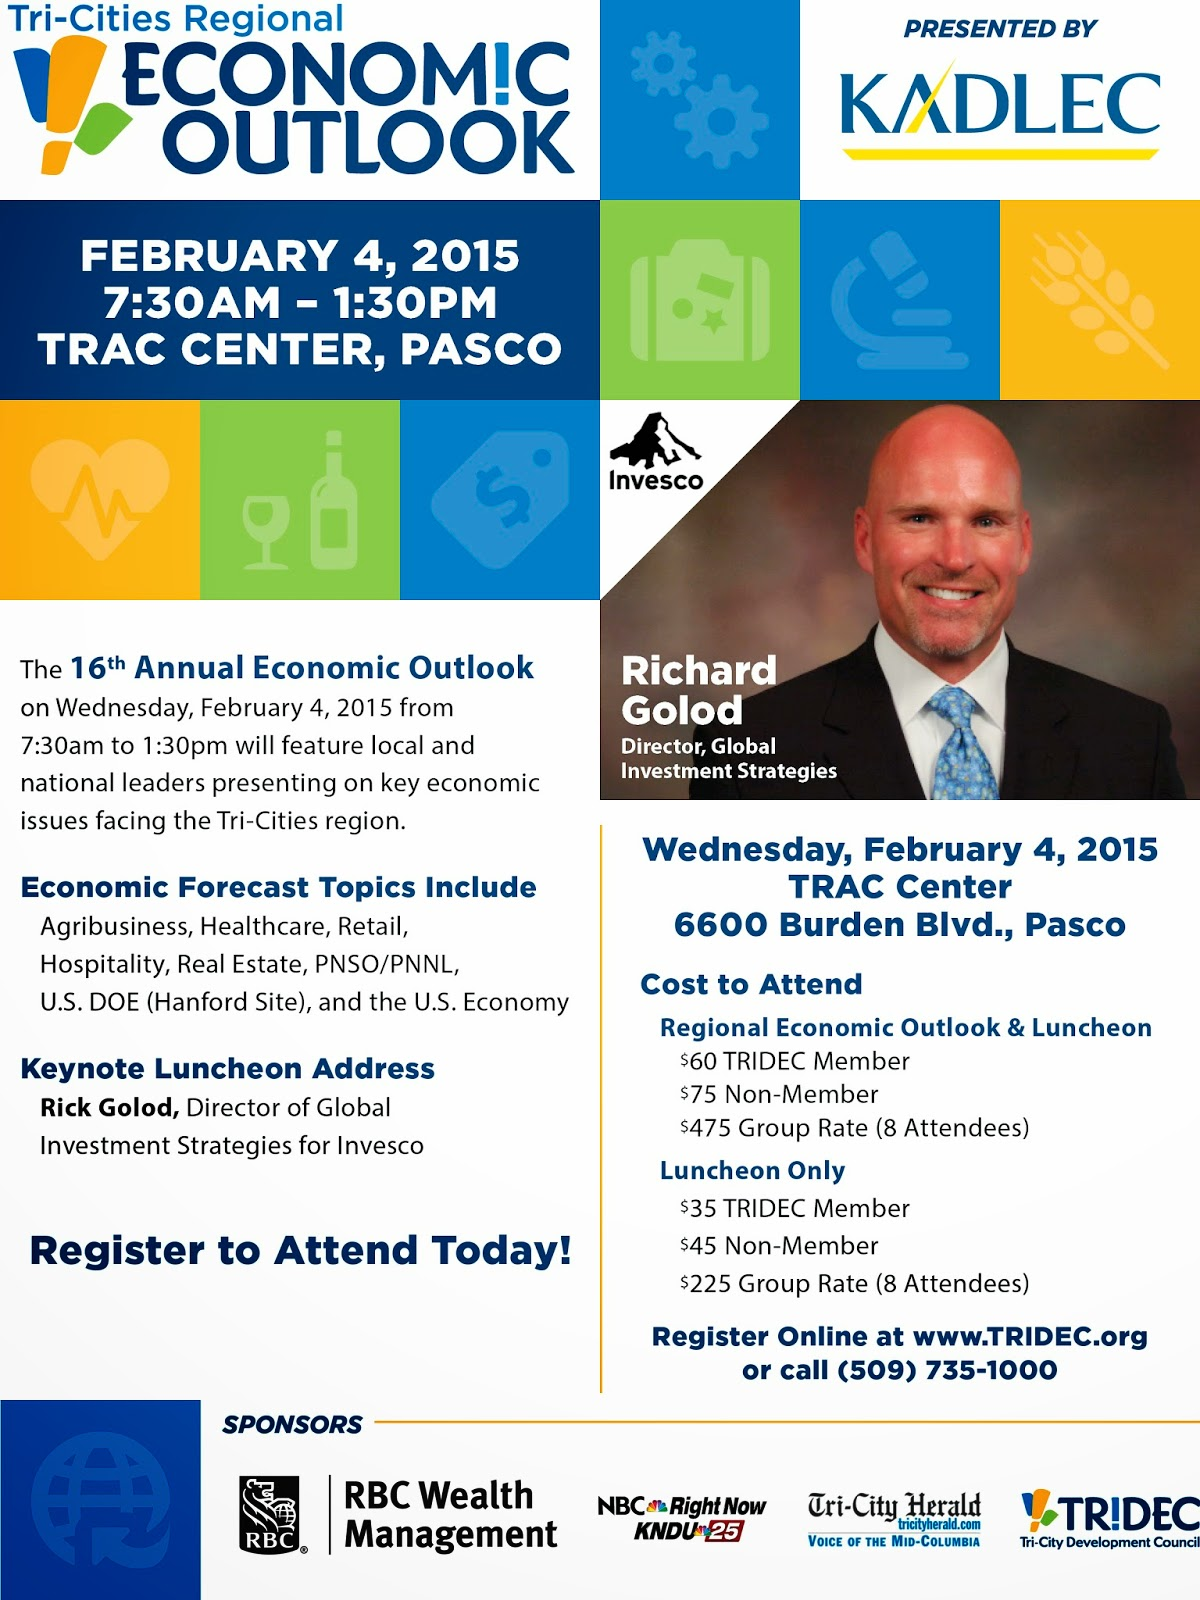 Tri-Cities Regional Economic Outlook Conference Pasco, Washington